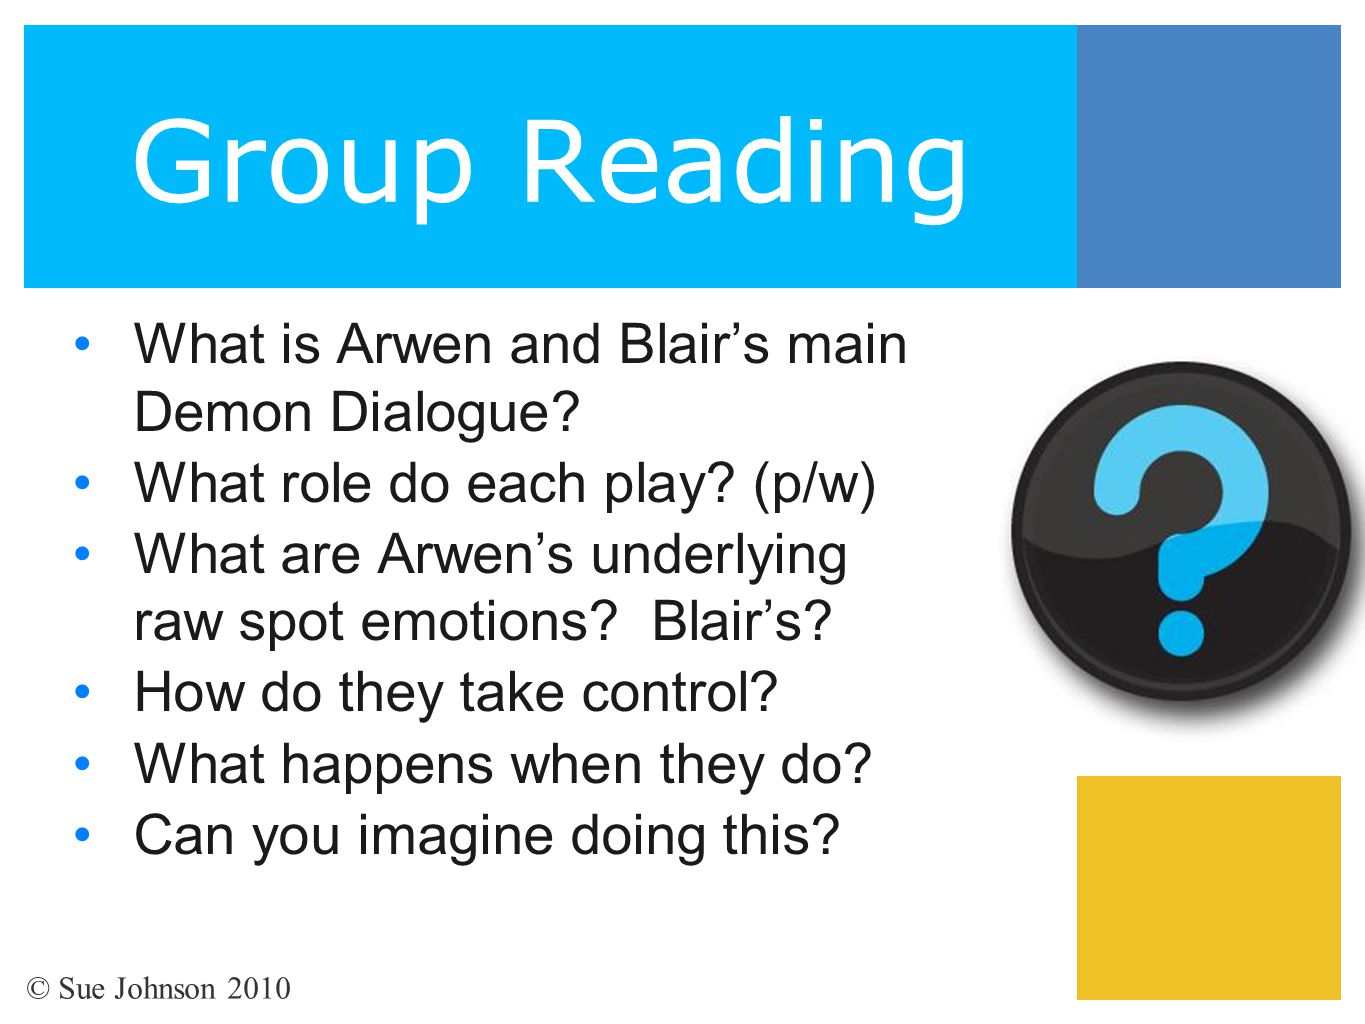 Group Reading What is Arwen and Blair's main Demon Dialogue